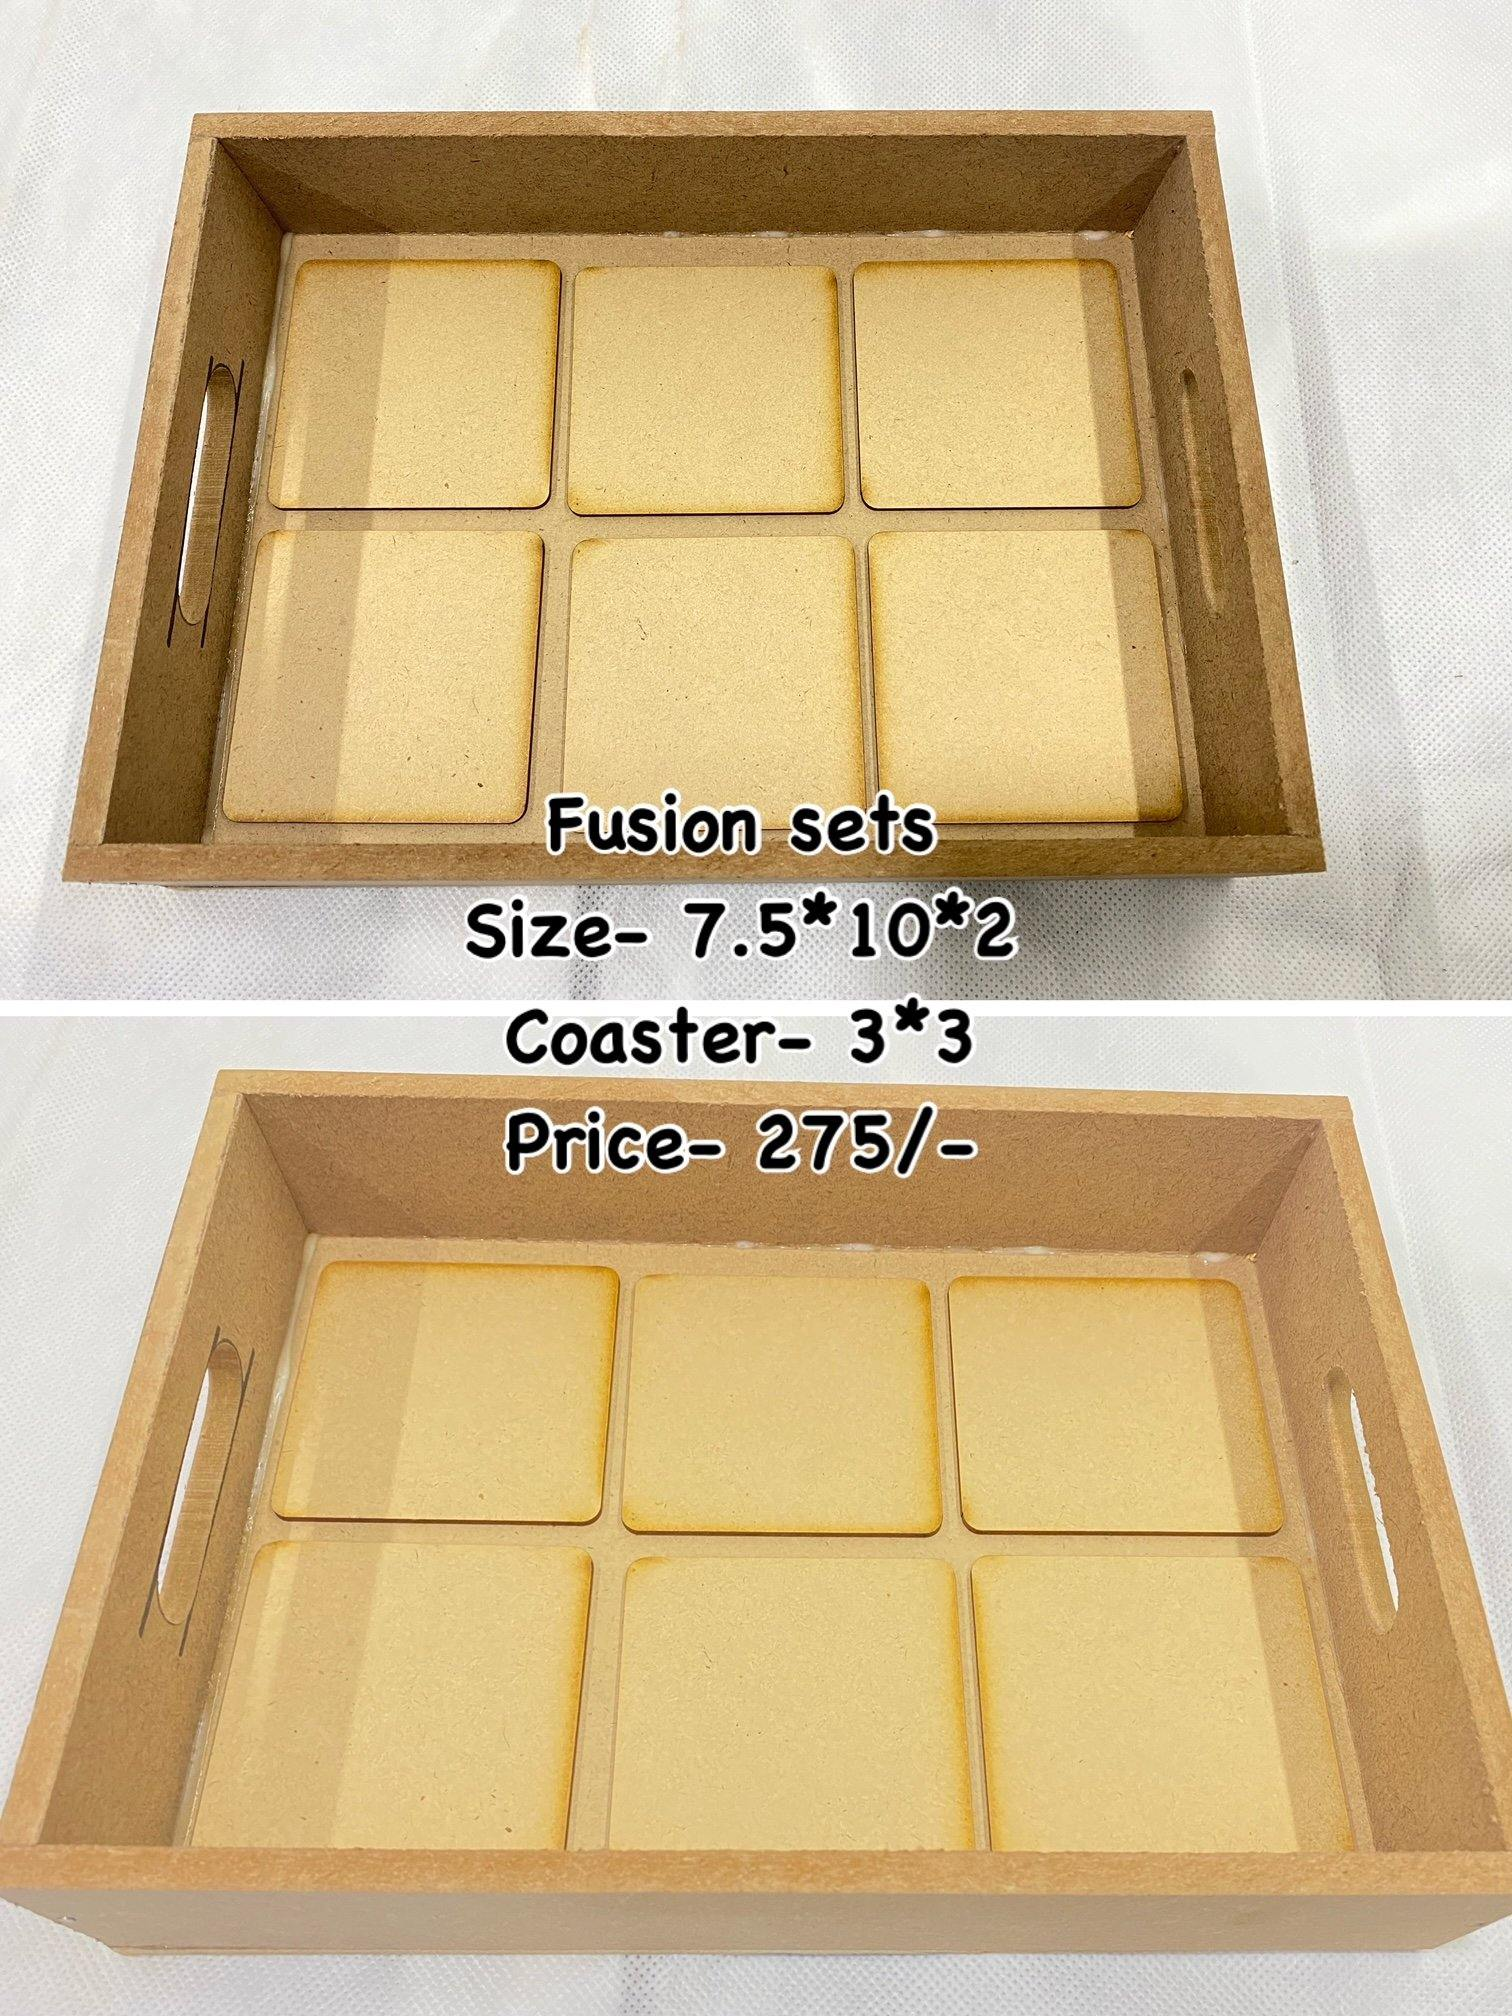 Fusion trays with detachable coasters (Design no - 1)